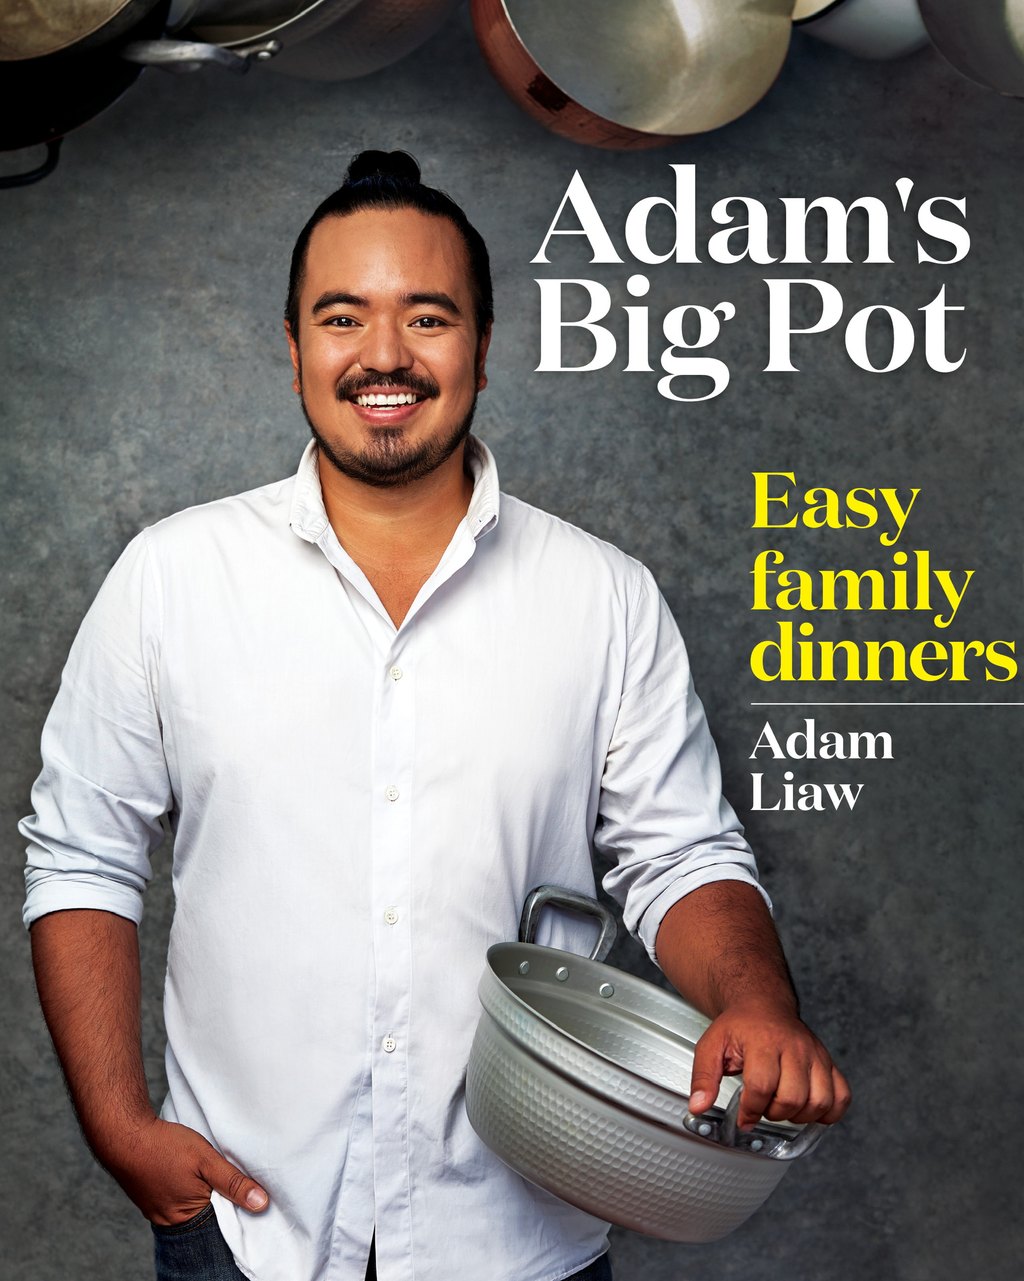 Adam's Big Pot Easy Family Dinners